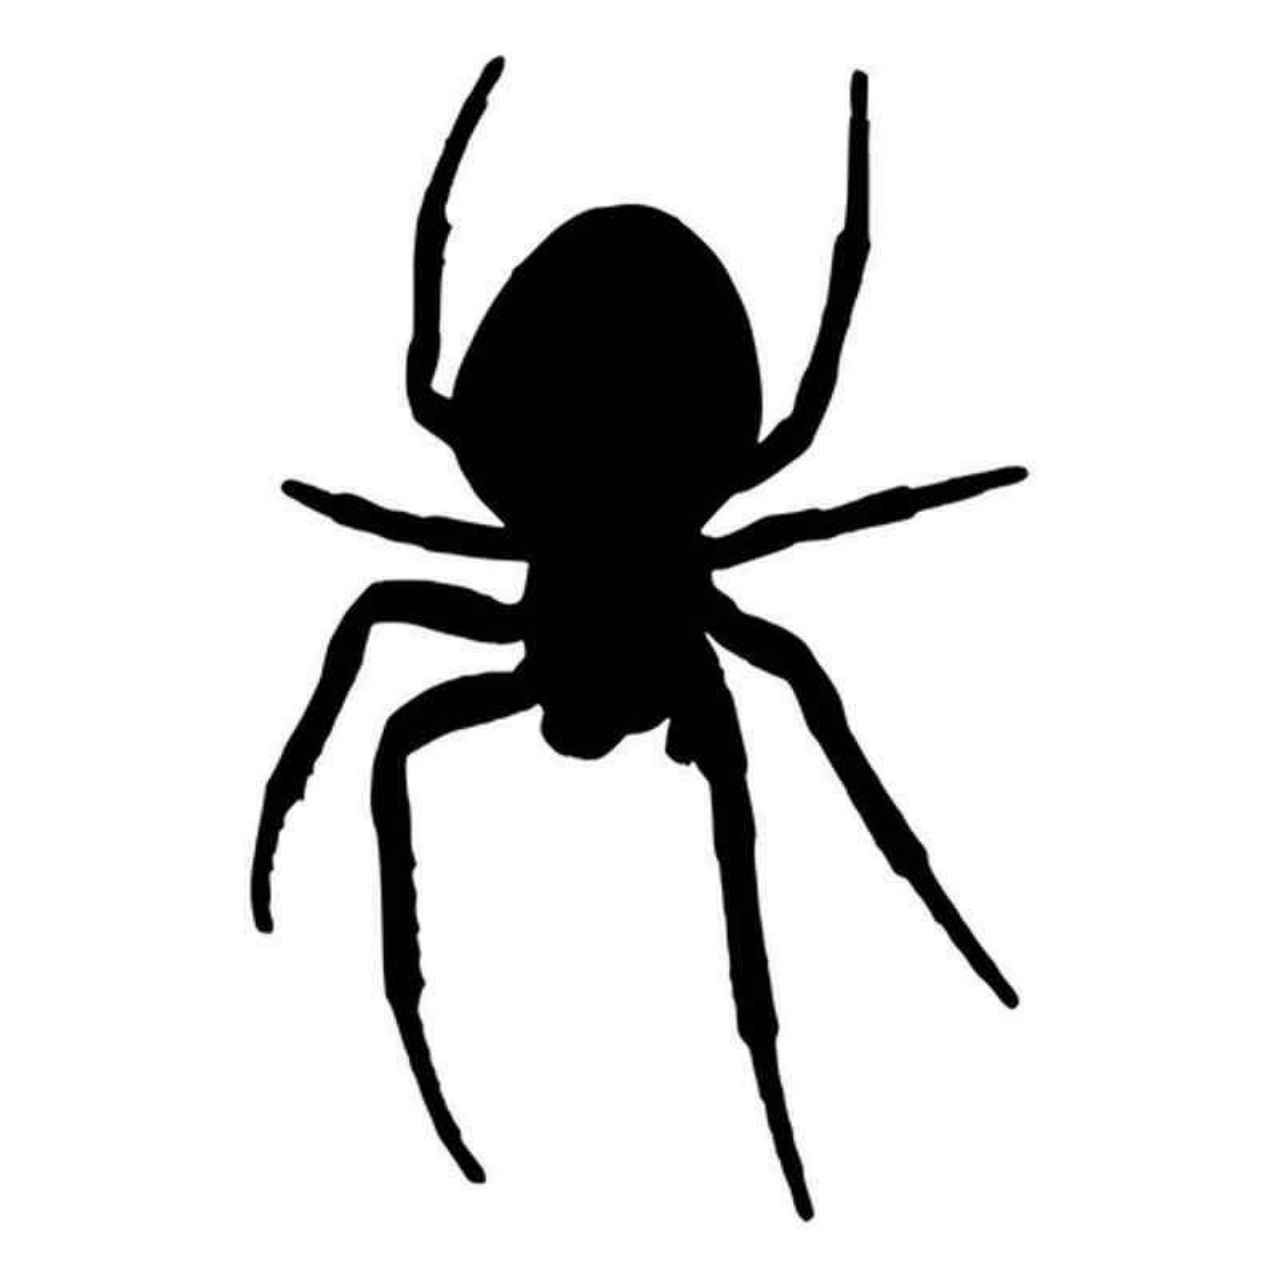 BROWN RECLUSE SPIDER Vinyl Decal Sticker Car Window Wall Bumper Creepy Arachnid